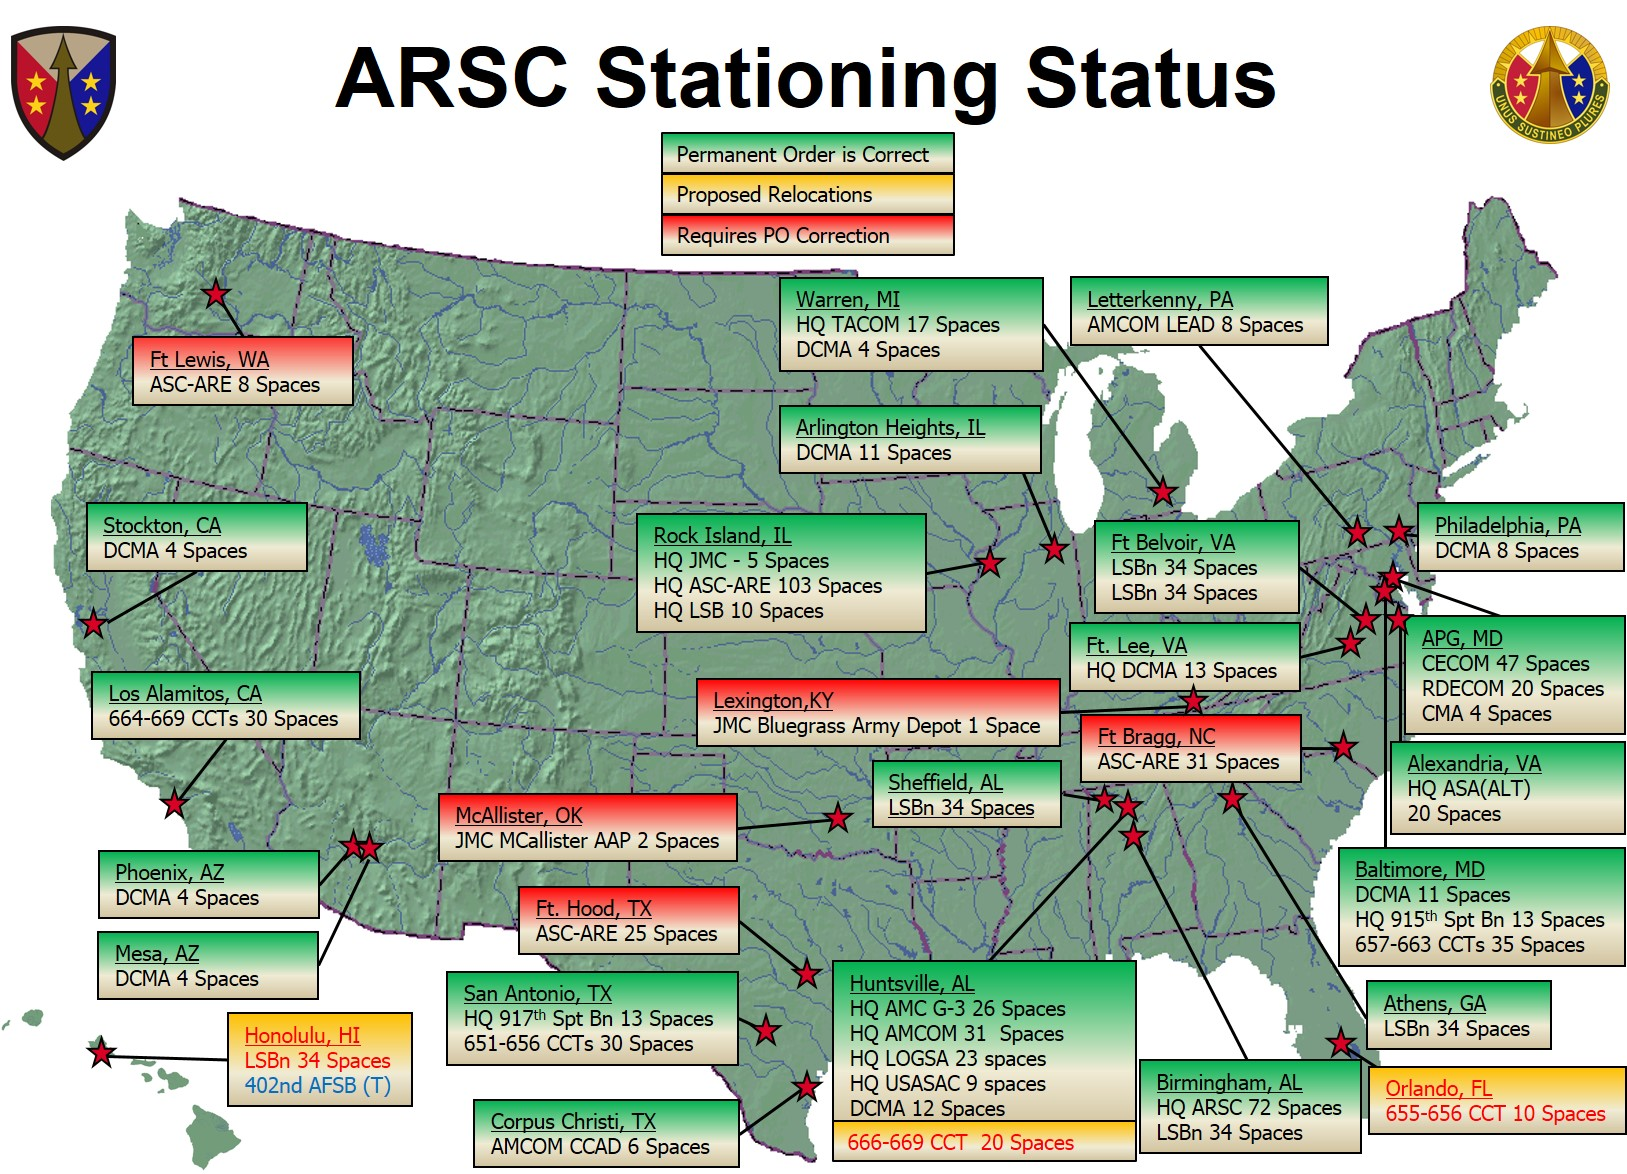 File:ARSC Stationing Status jpg - Wikimedia Commons